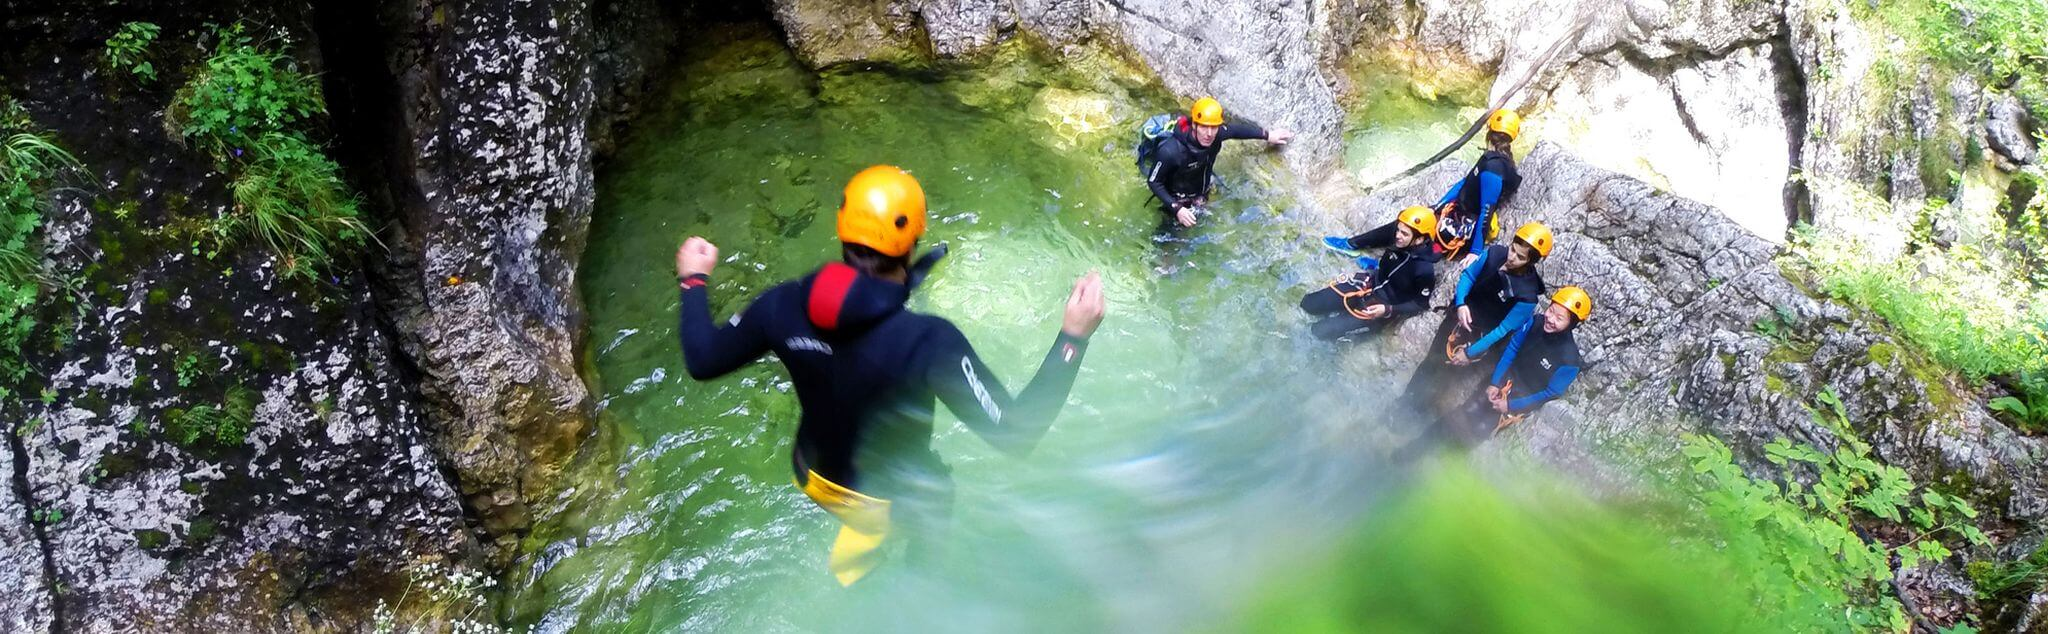 Canyoning in Tyne and Wear